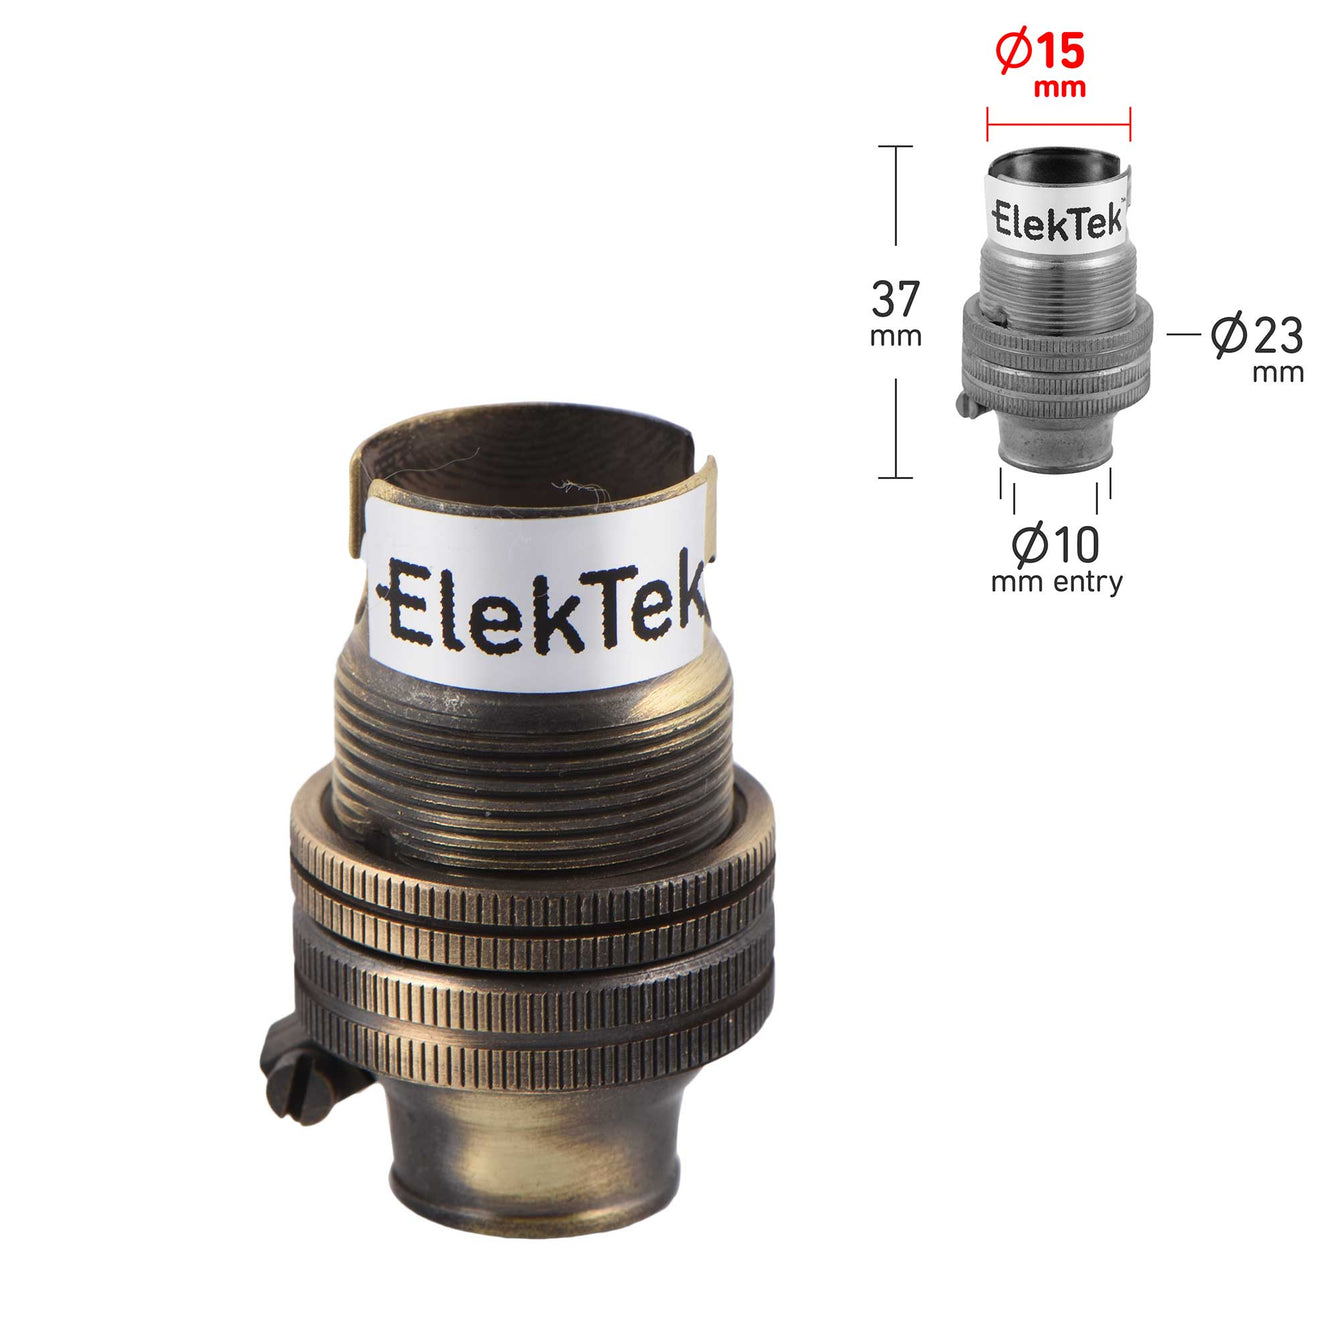 ElekTek Lamp Holder 10mm or Half Inch Entry Miniature Small Bayonet Cap SBC B15 With Shade Ring Solid Brass - Buy It Better Nickel / 10mm